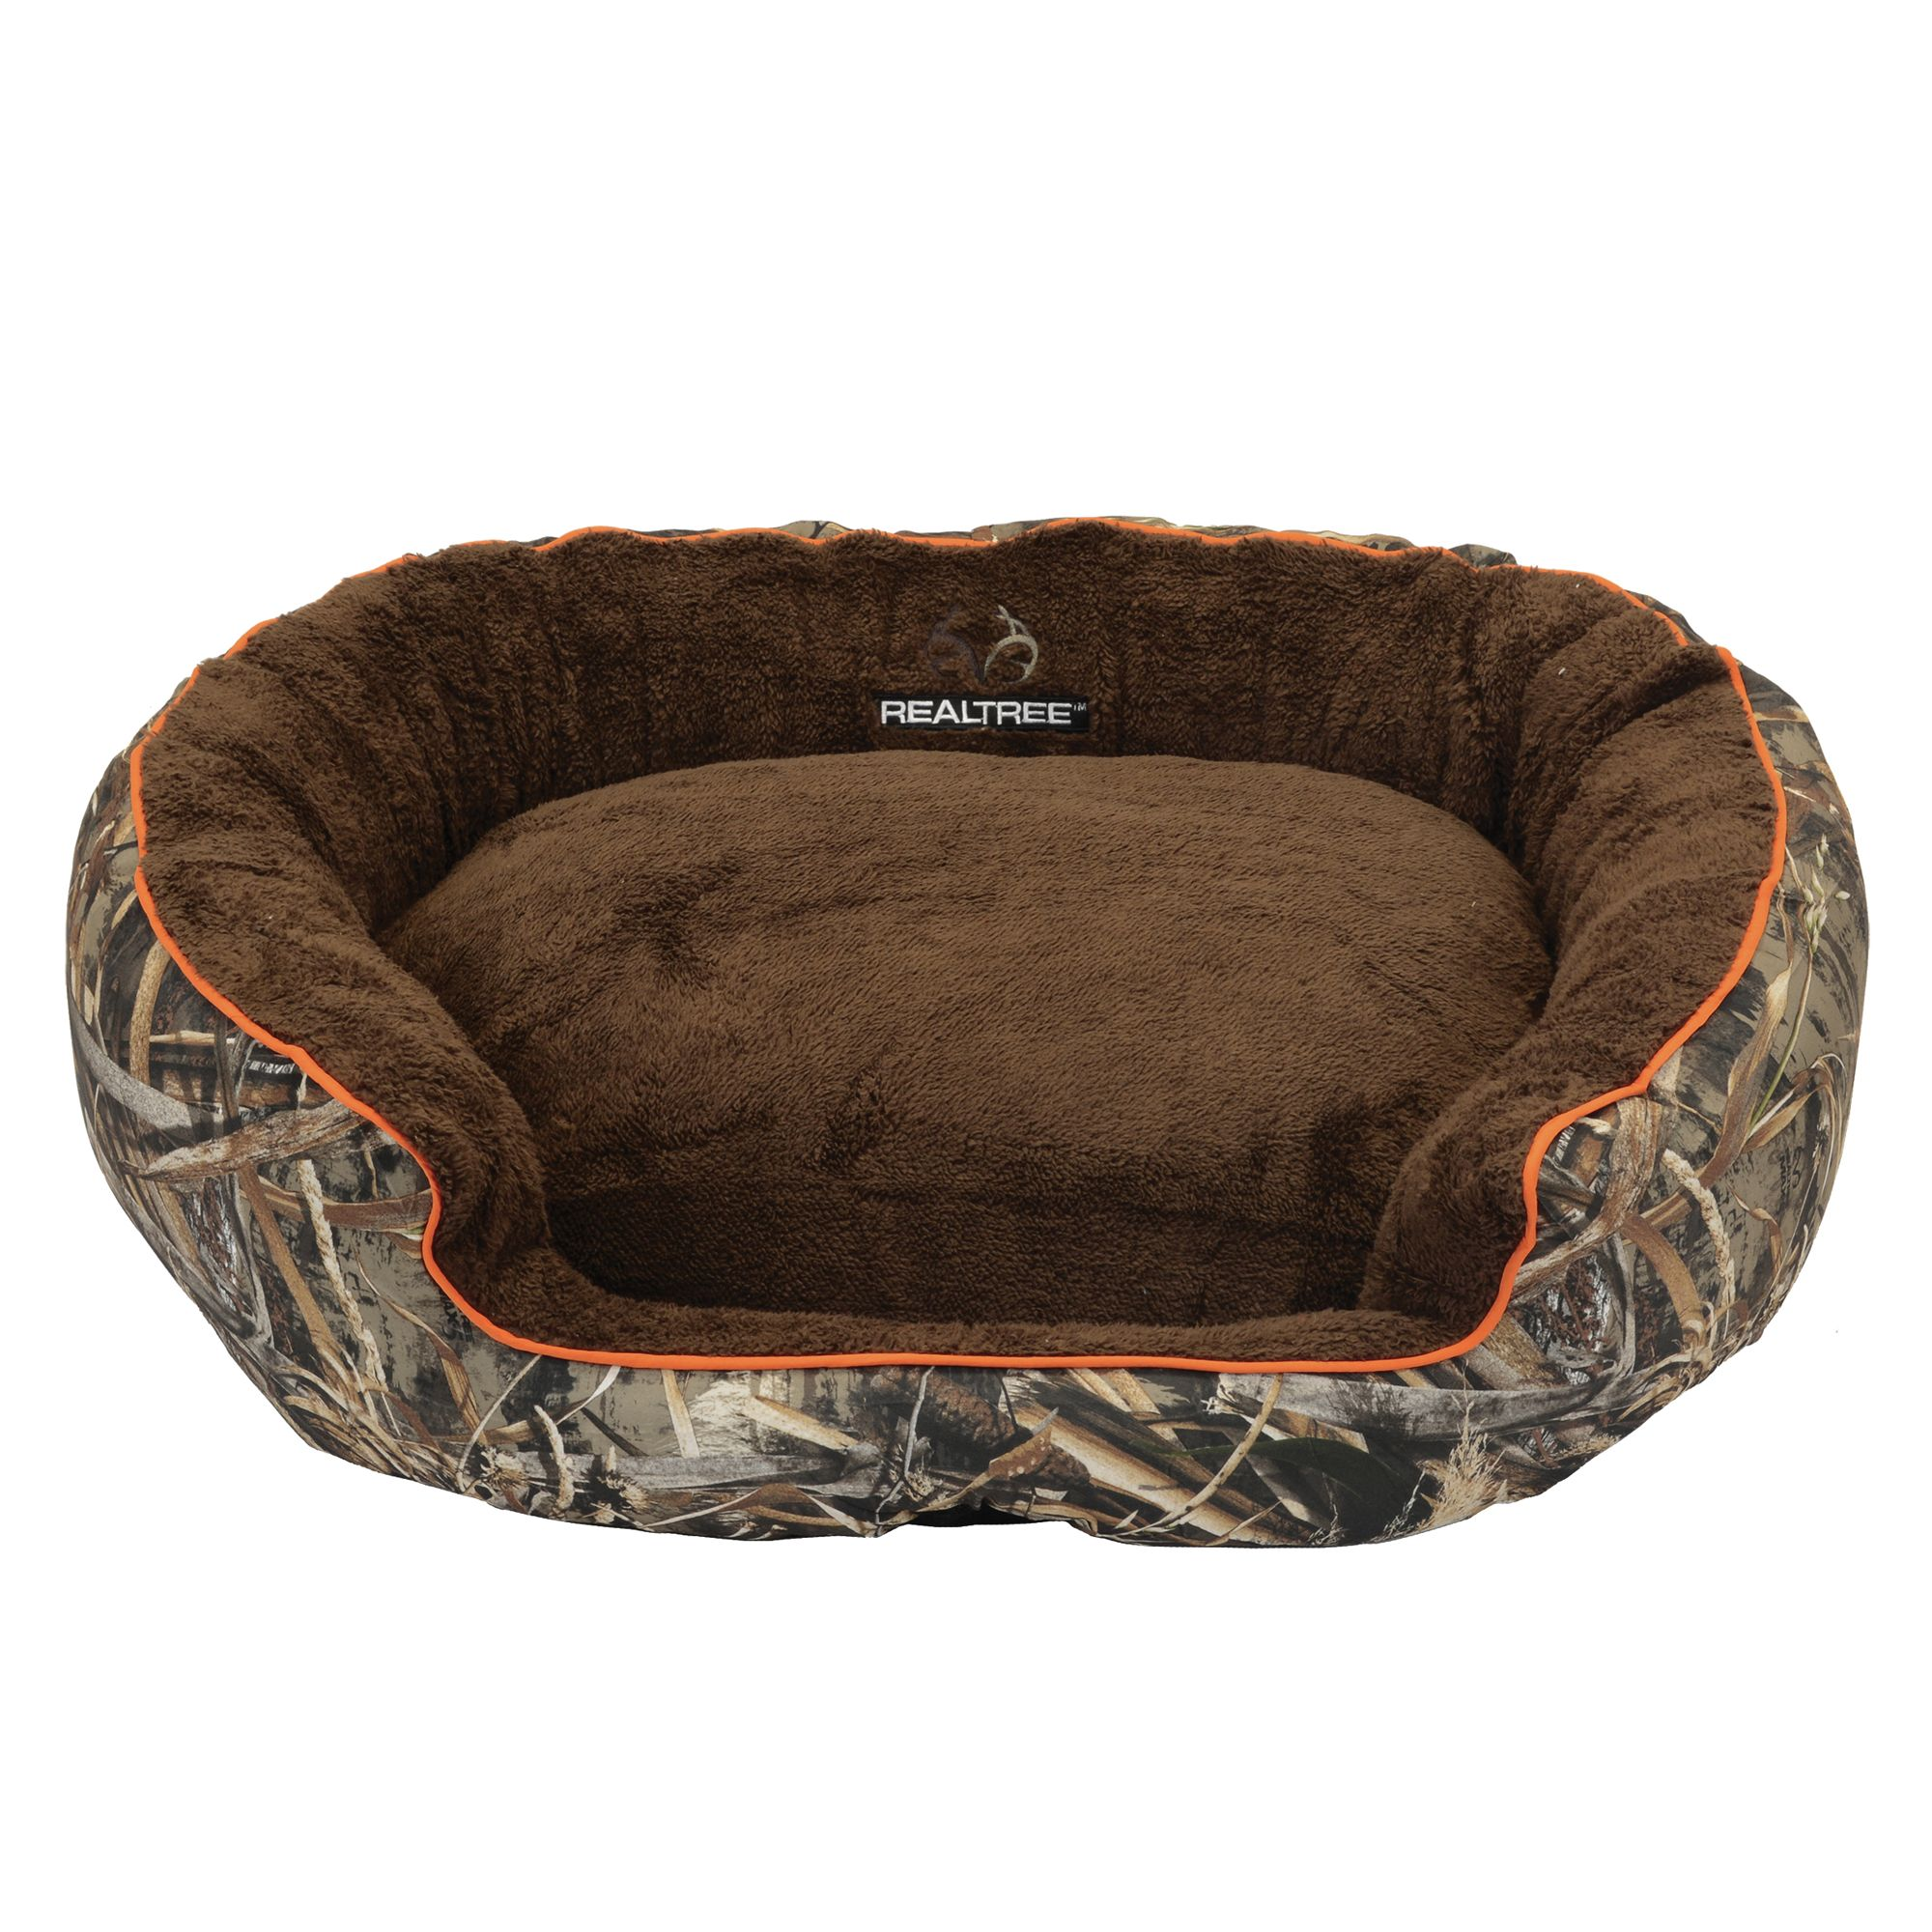 Realtree Camo Bolster Dog Bed Orange